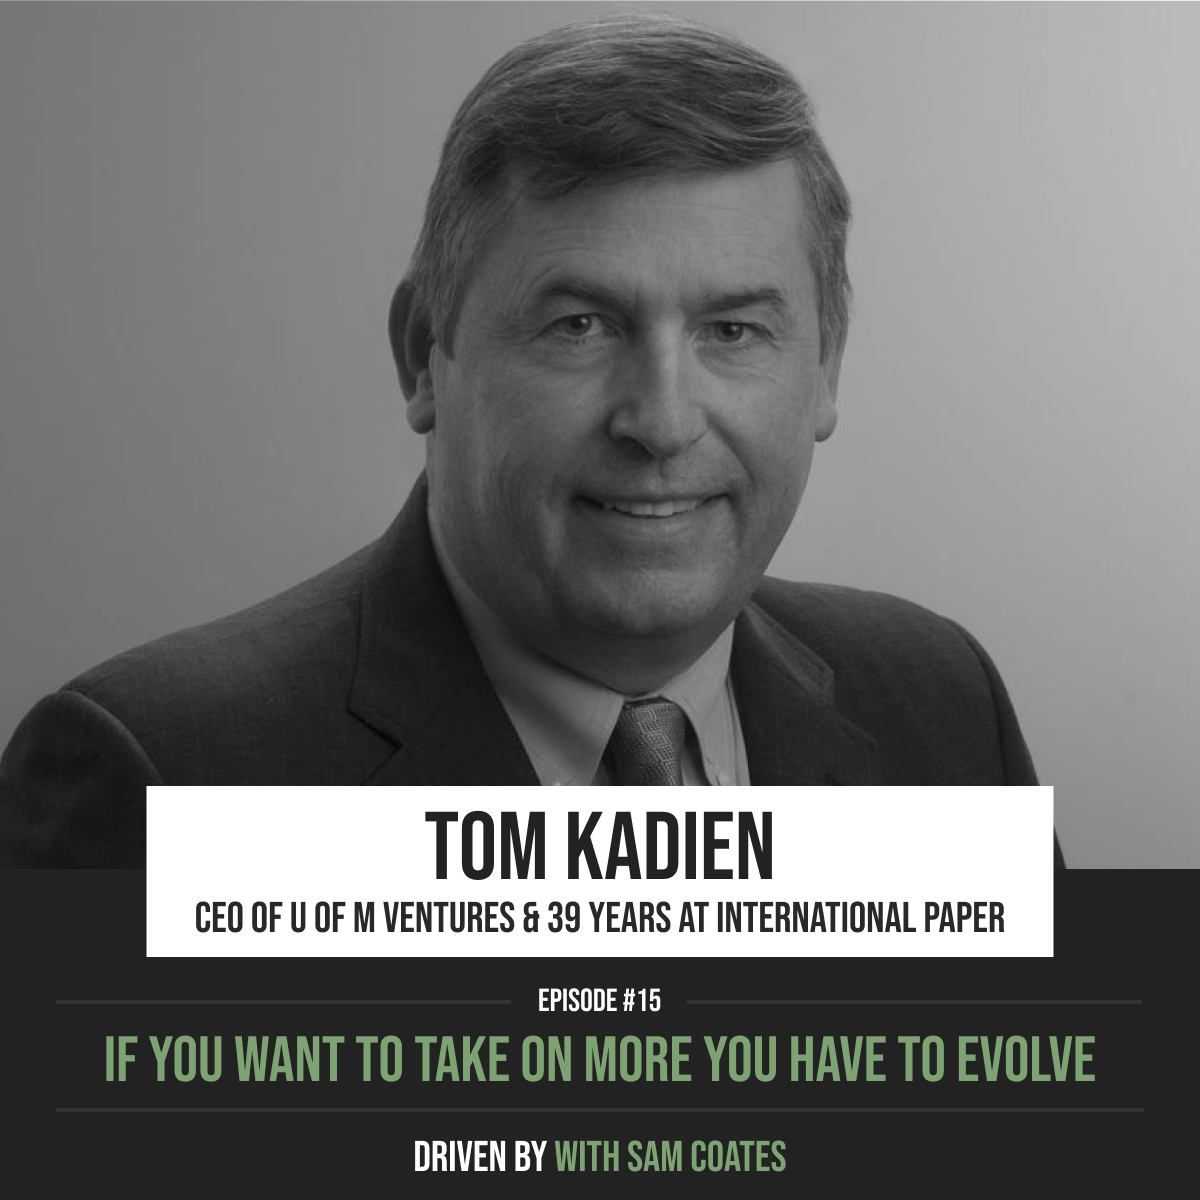 Tom Kadien | If You Want To Take On More, You Have To Evolve